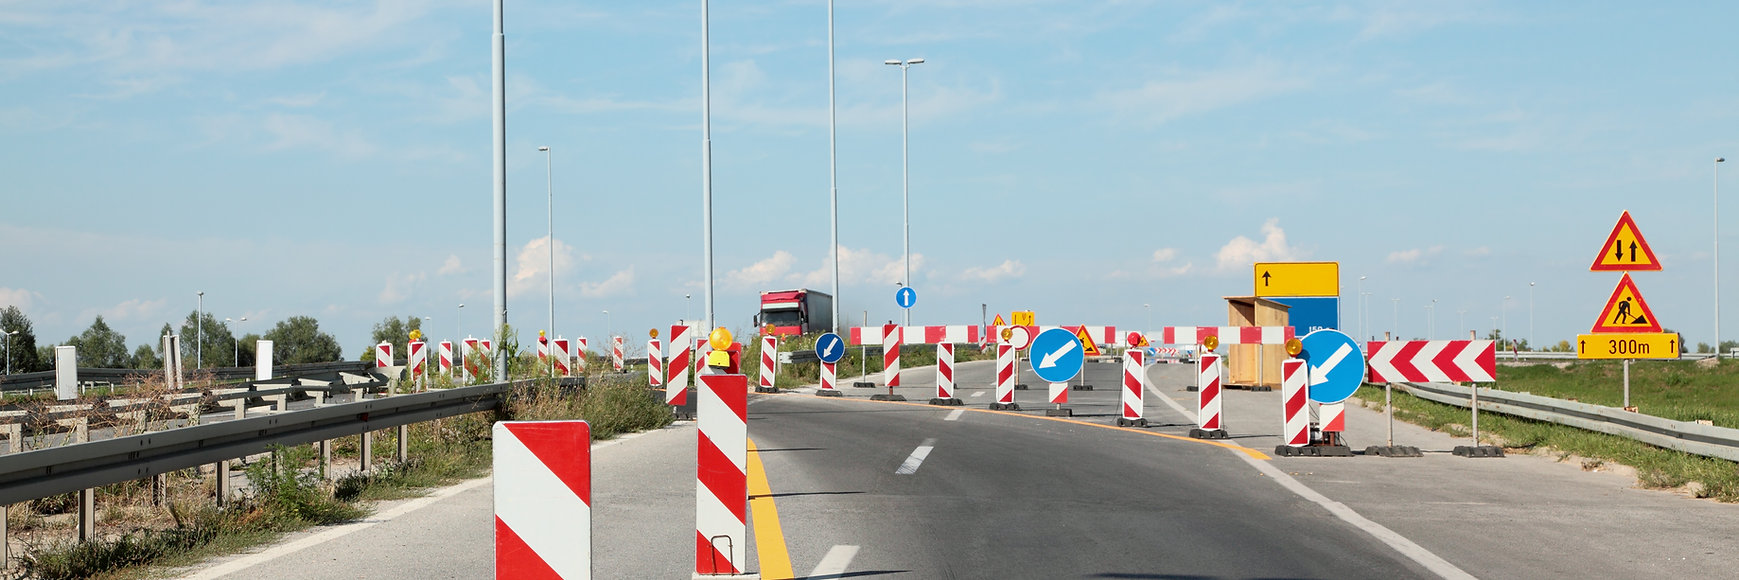 Road signs in a highway on reconstructio